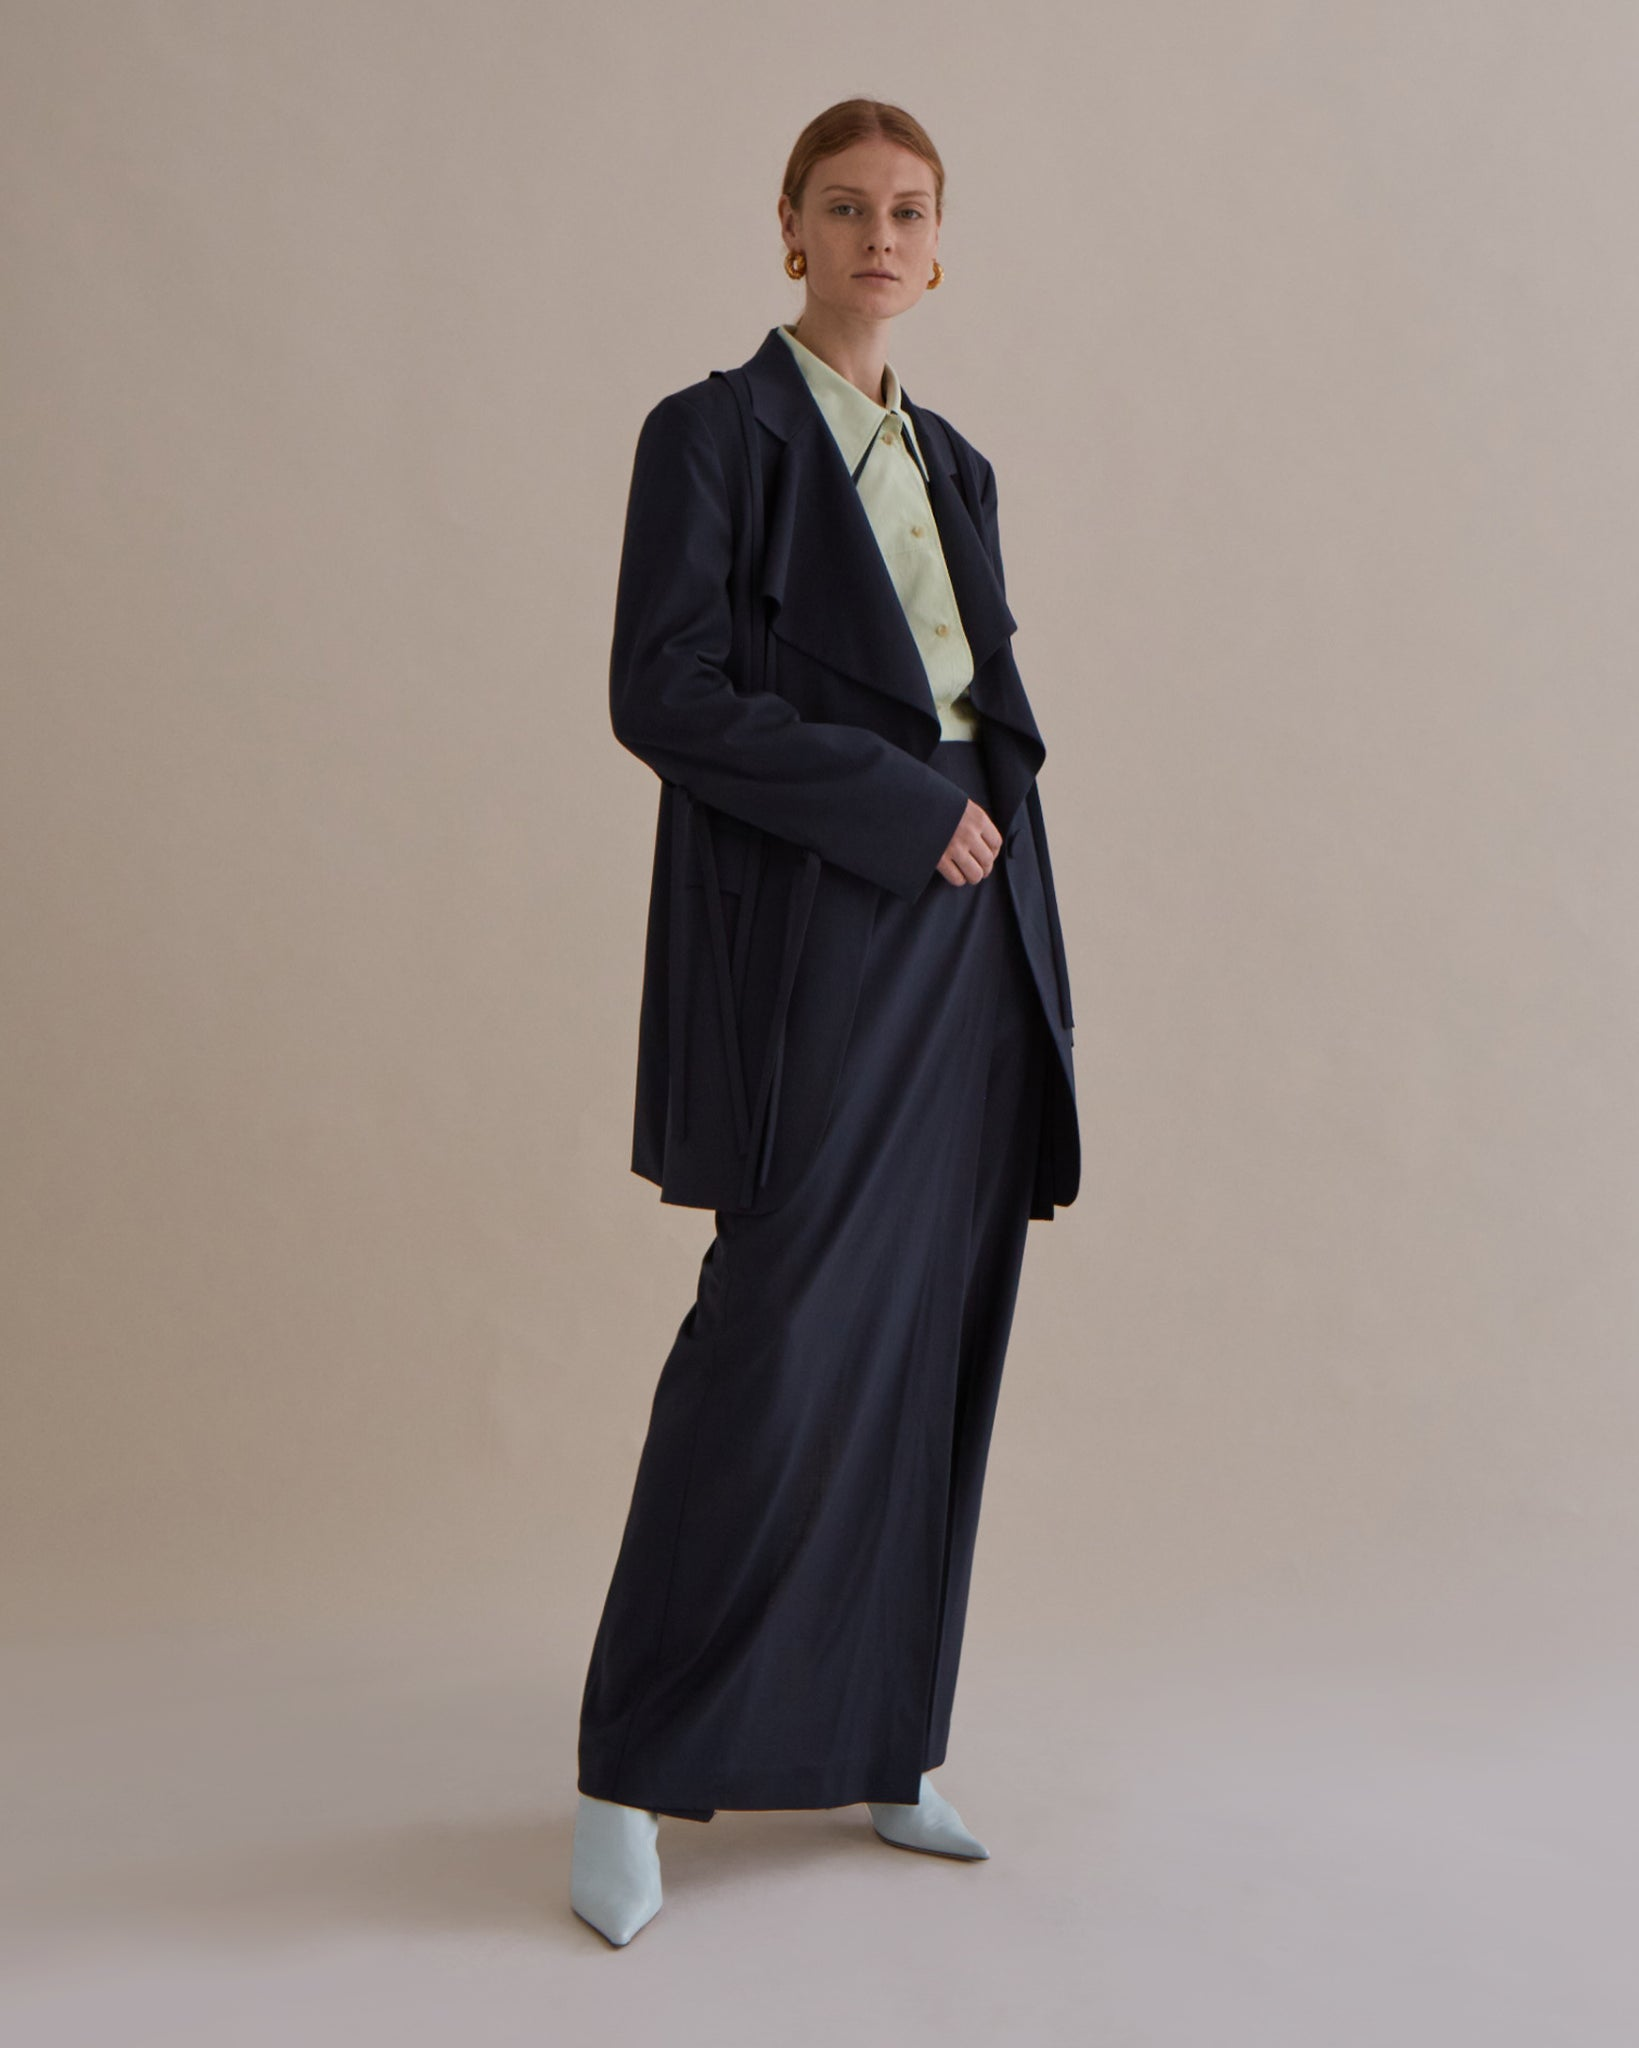 Gillian Trousers Wool Suiting Charcoal - SPECIAL PRICE